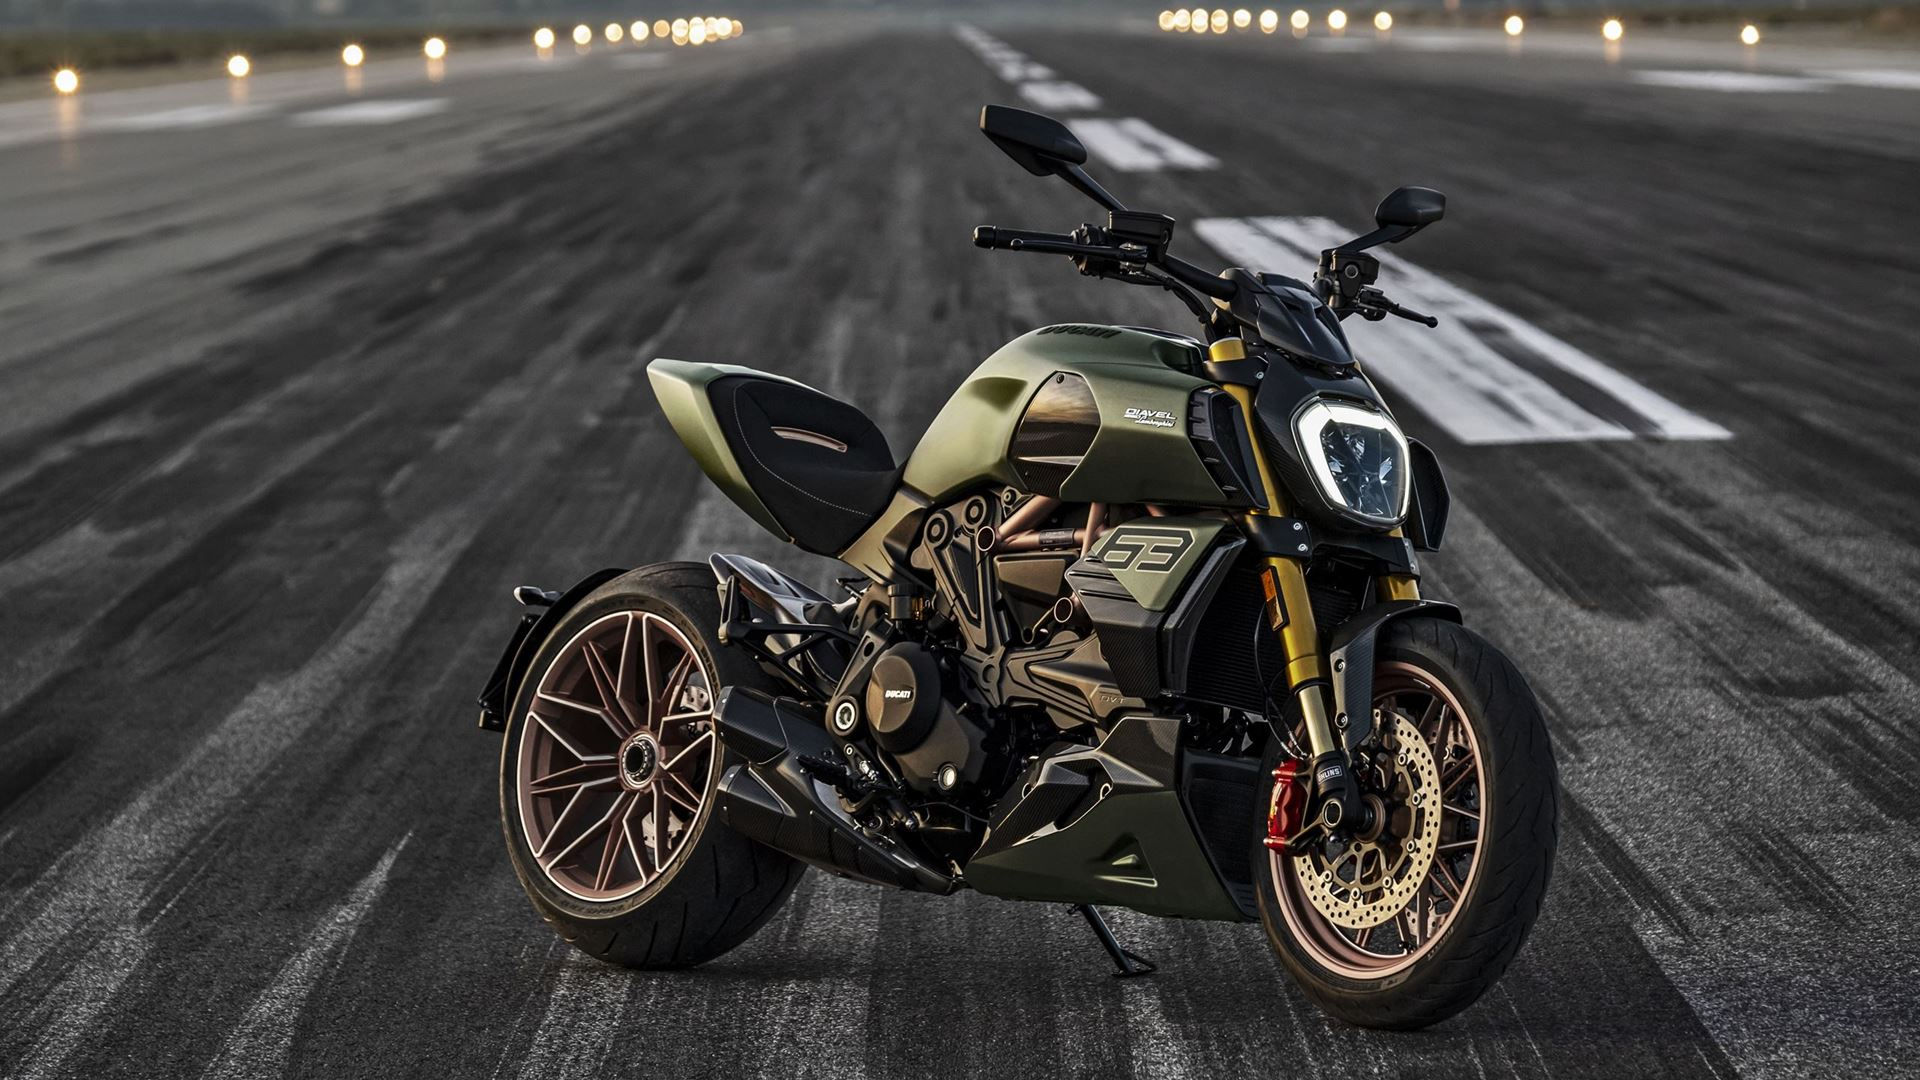 A unique project is born: Ducati Diavel 1260 Lamborghini, inspired by the Sián FKP 37 - Image 4